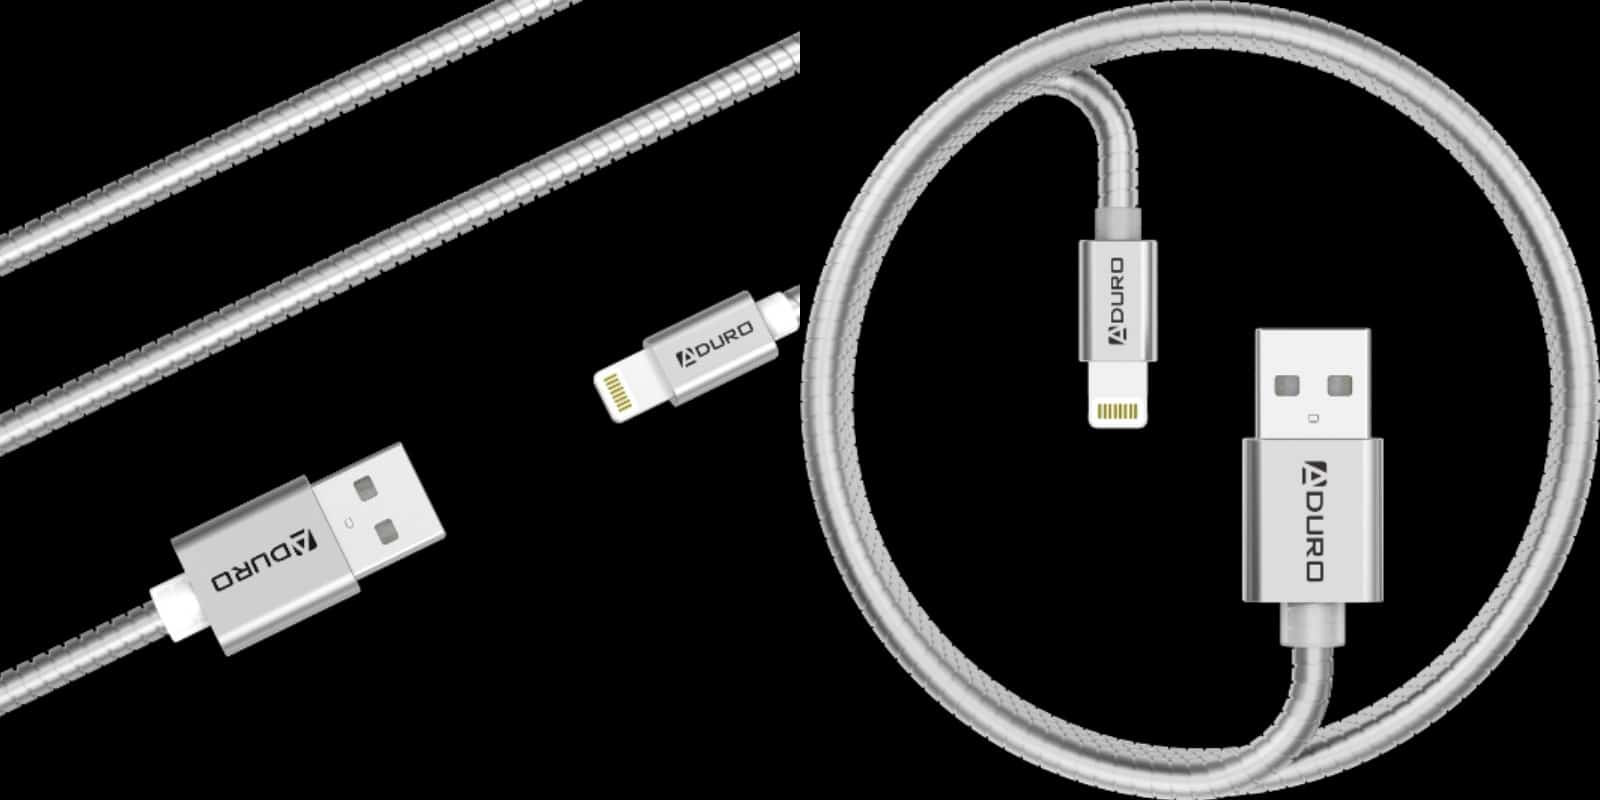 This metal-reinforced Lightning cable adds extra life and length to your iDevice's lifeline.